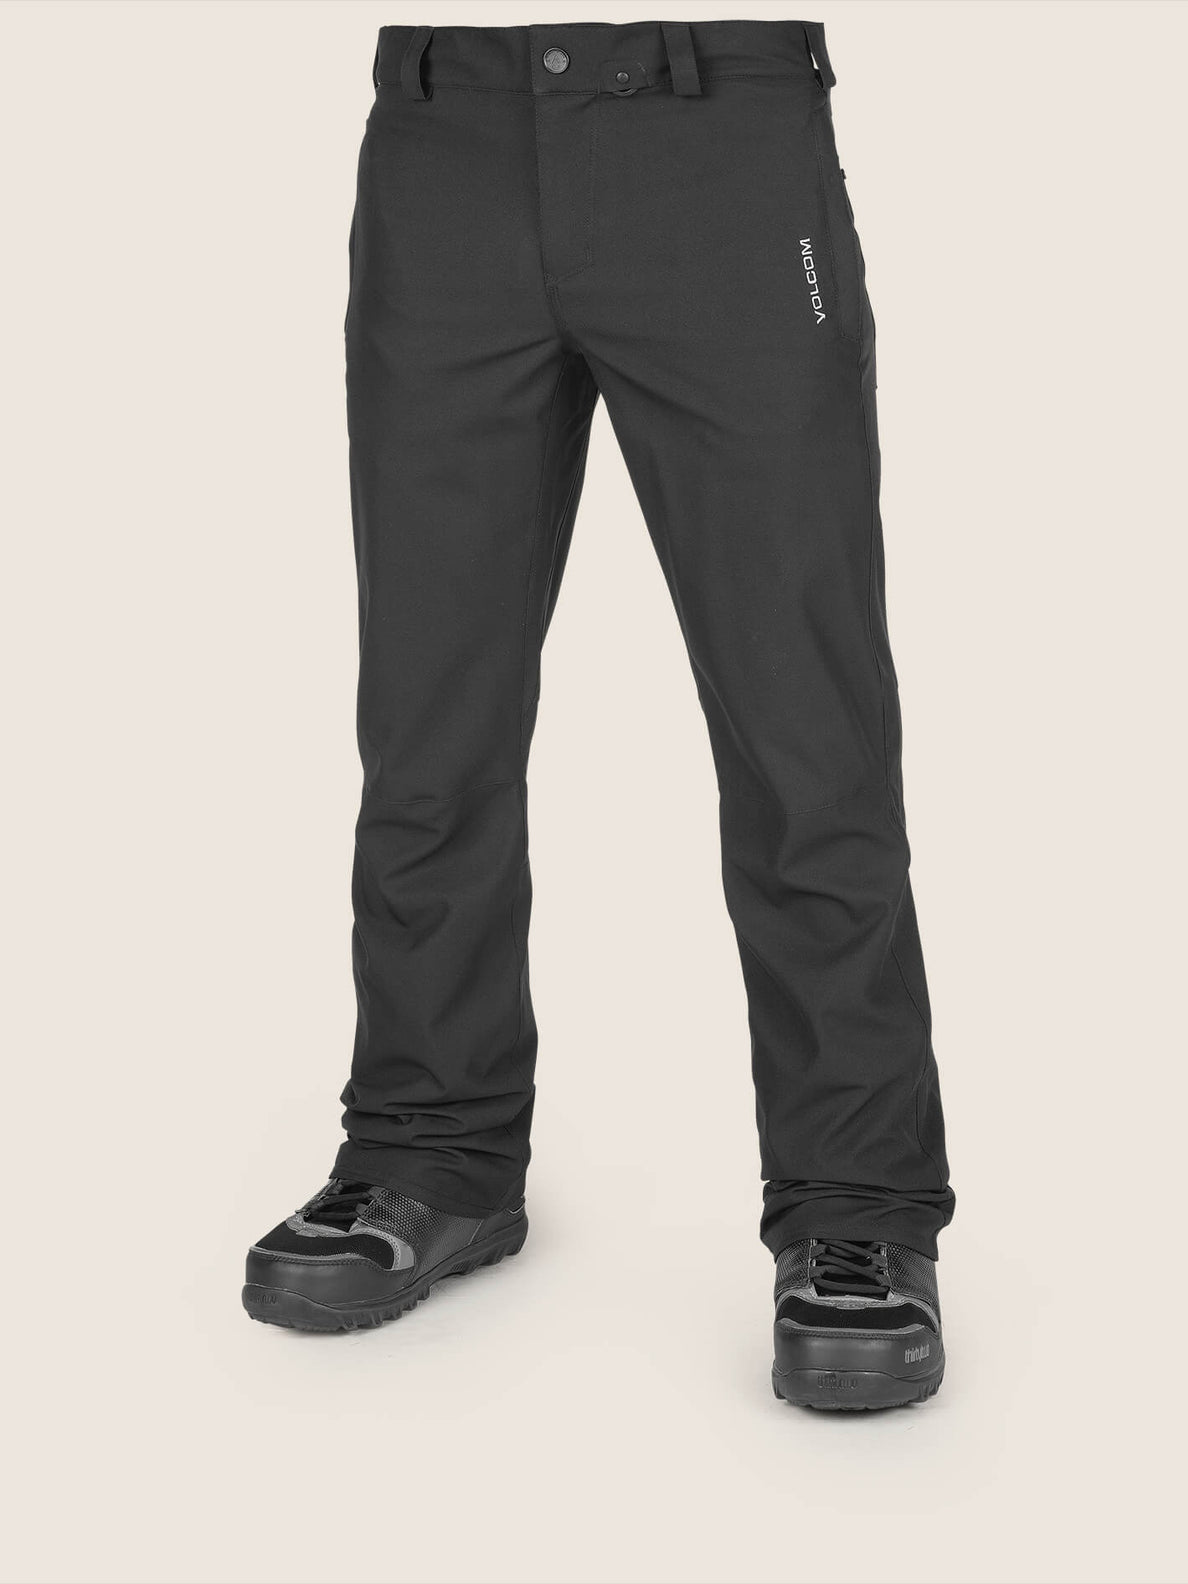 Klocker Tight Pant In Black, Front View